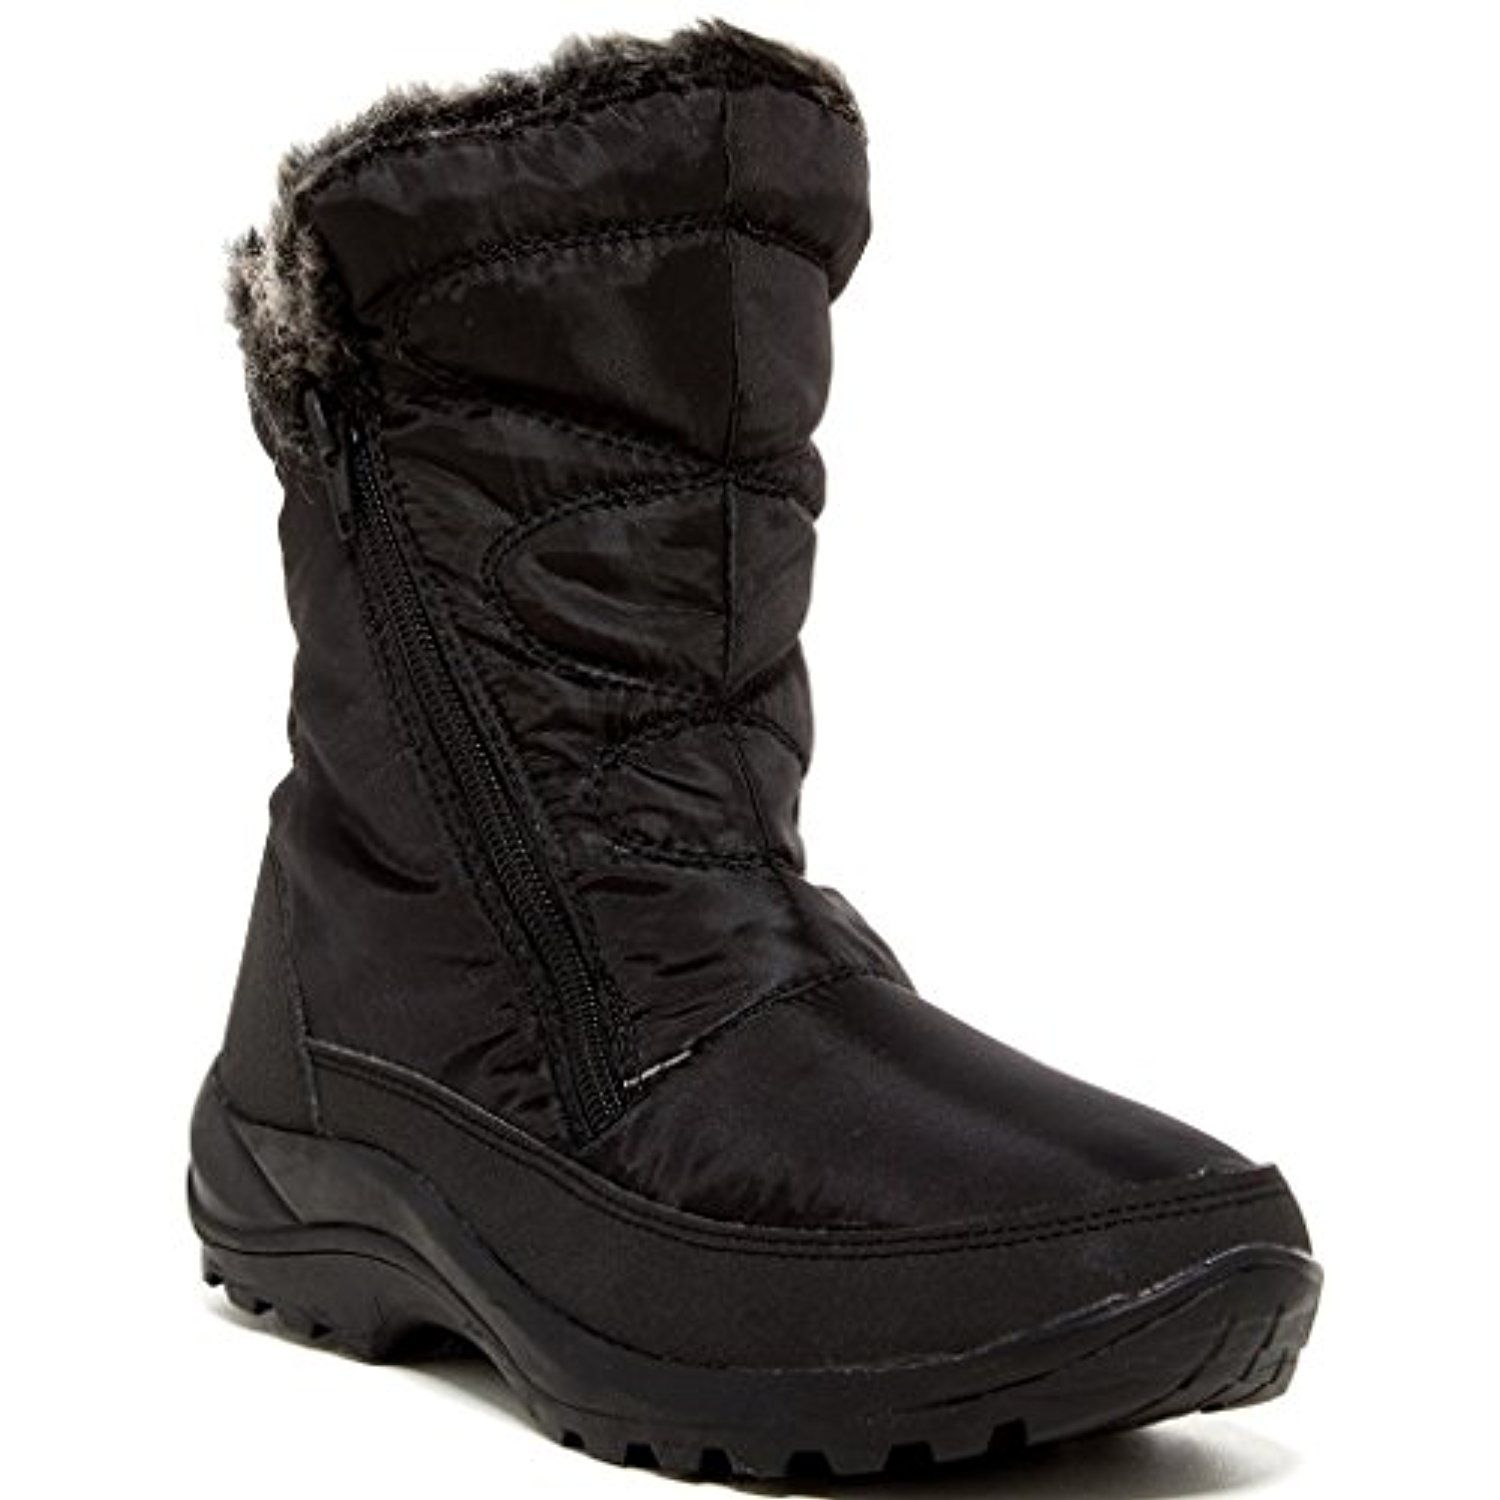 Amarylis Womens Fashion Faux Fur-Lined Boots